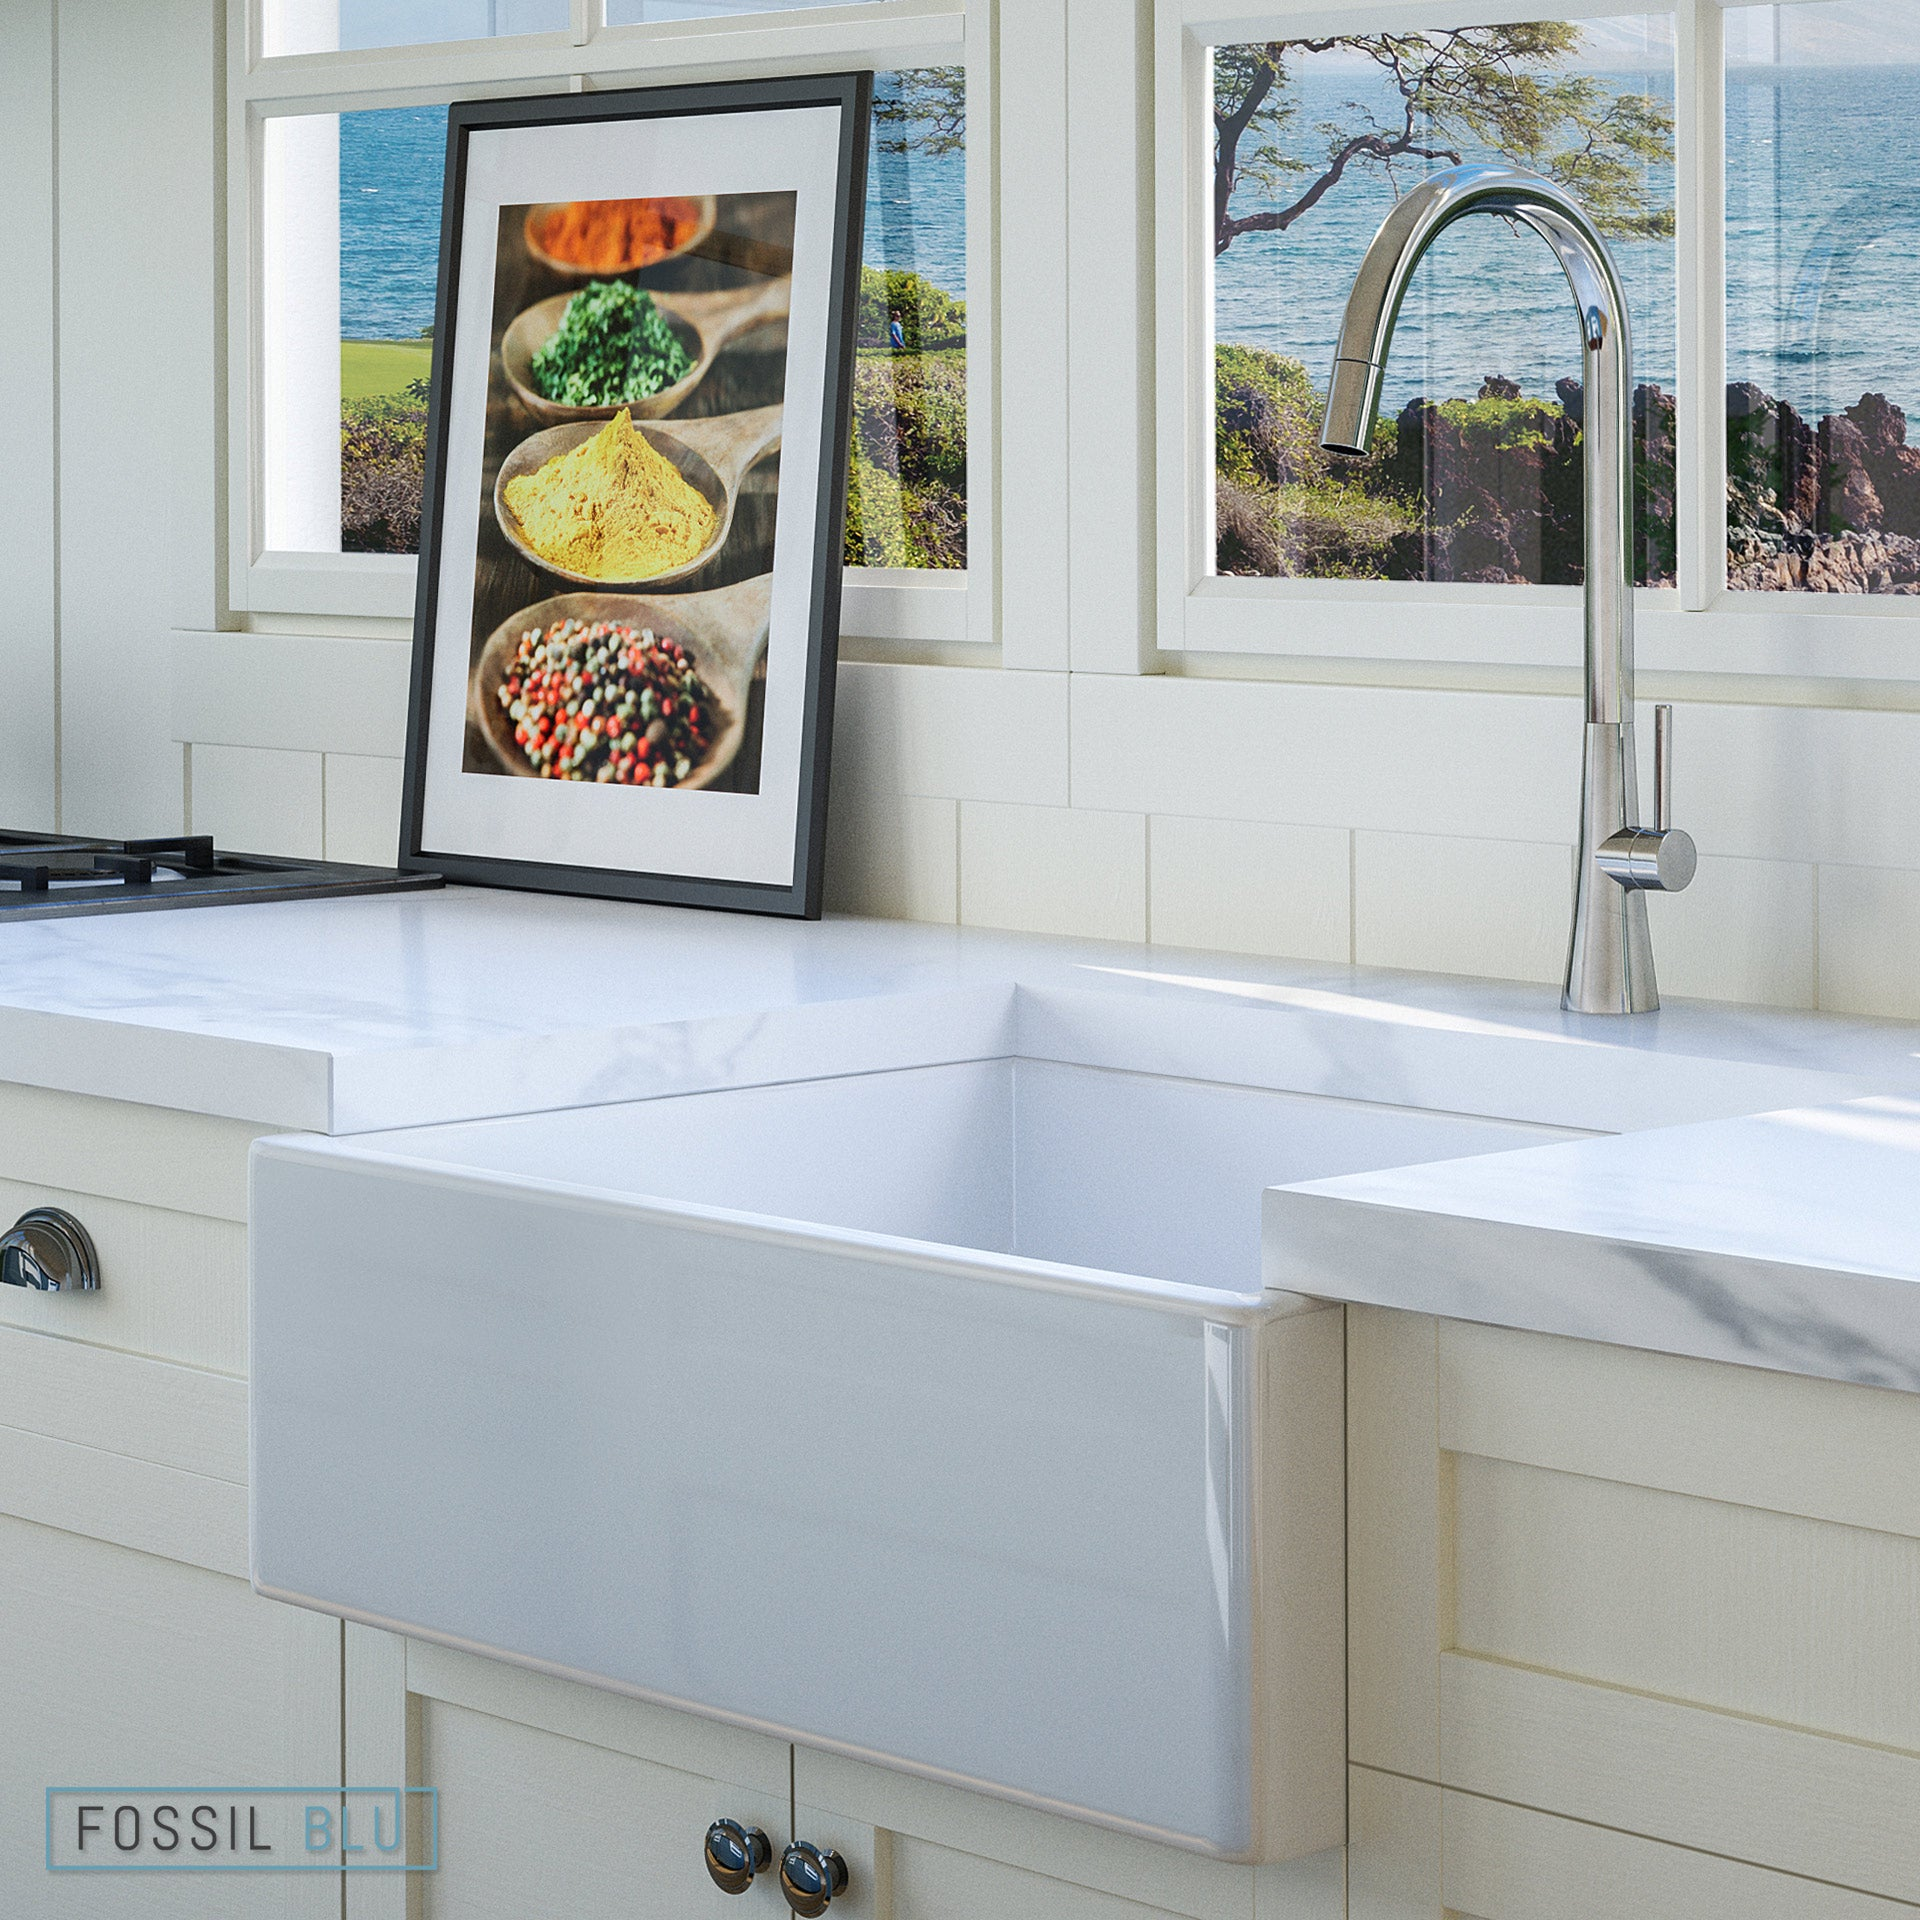 Fossil Blu - Luxury Fireclay and Copper Farmhouse Sinks